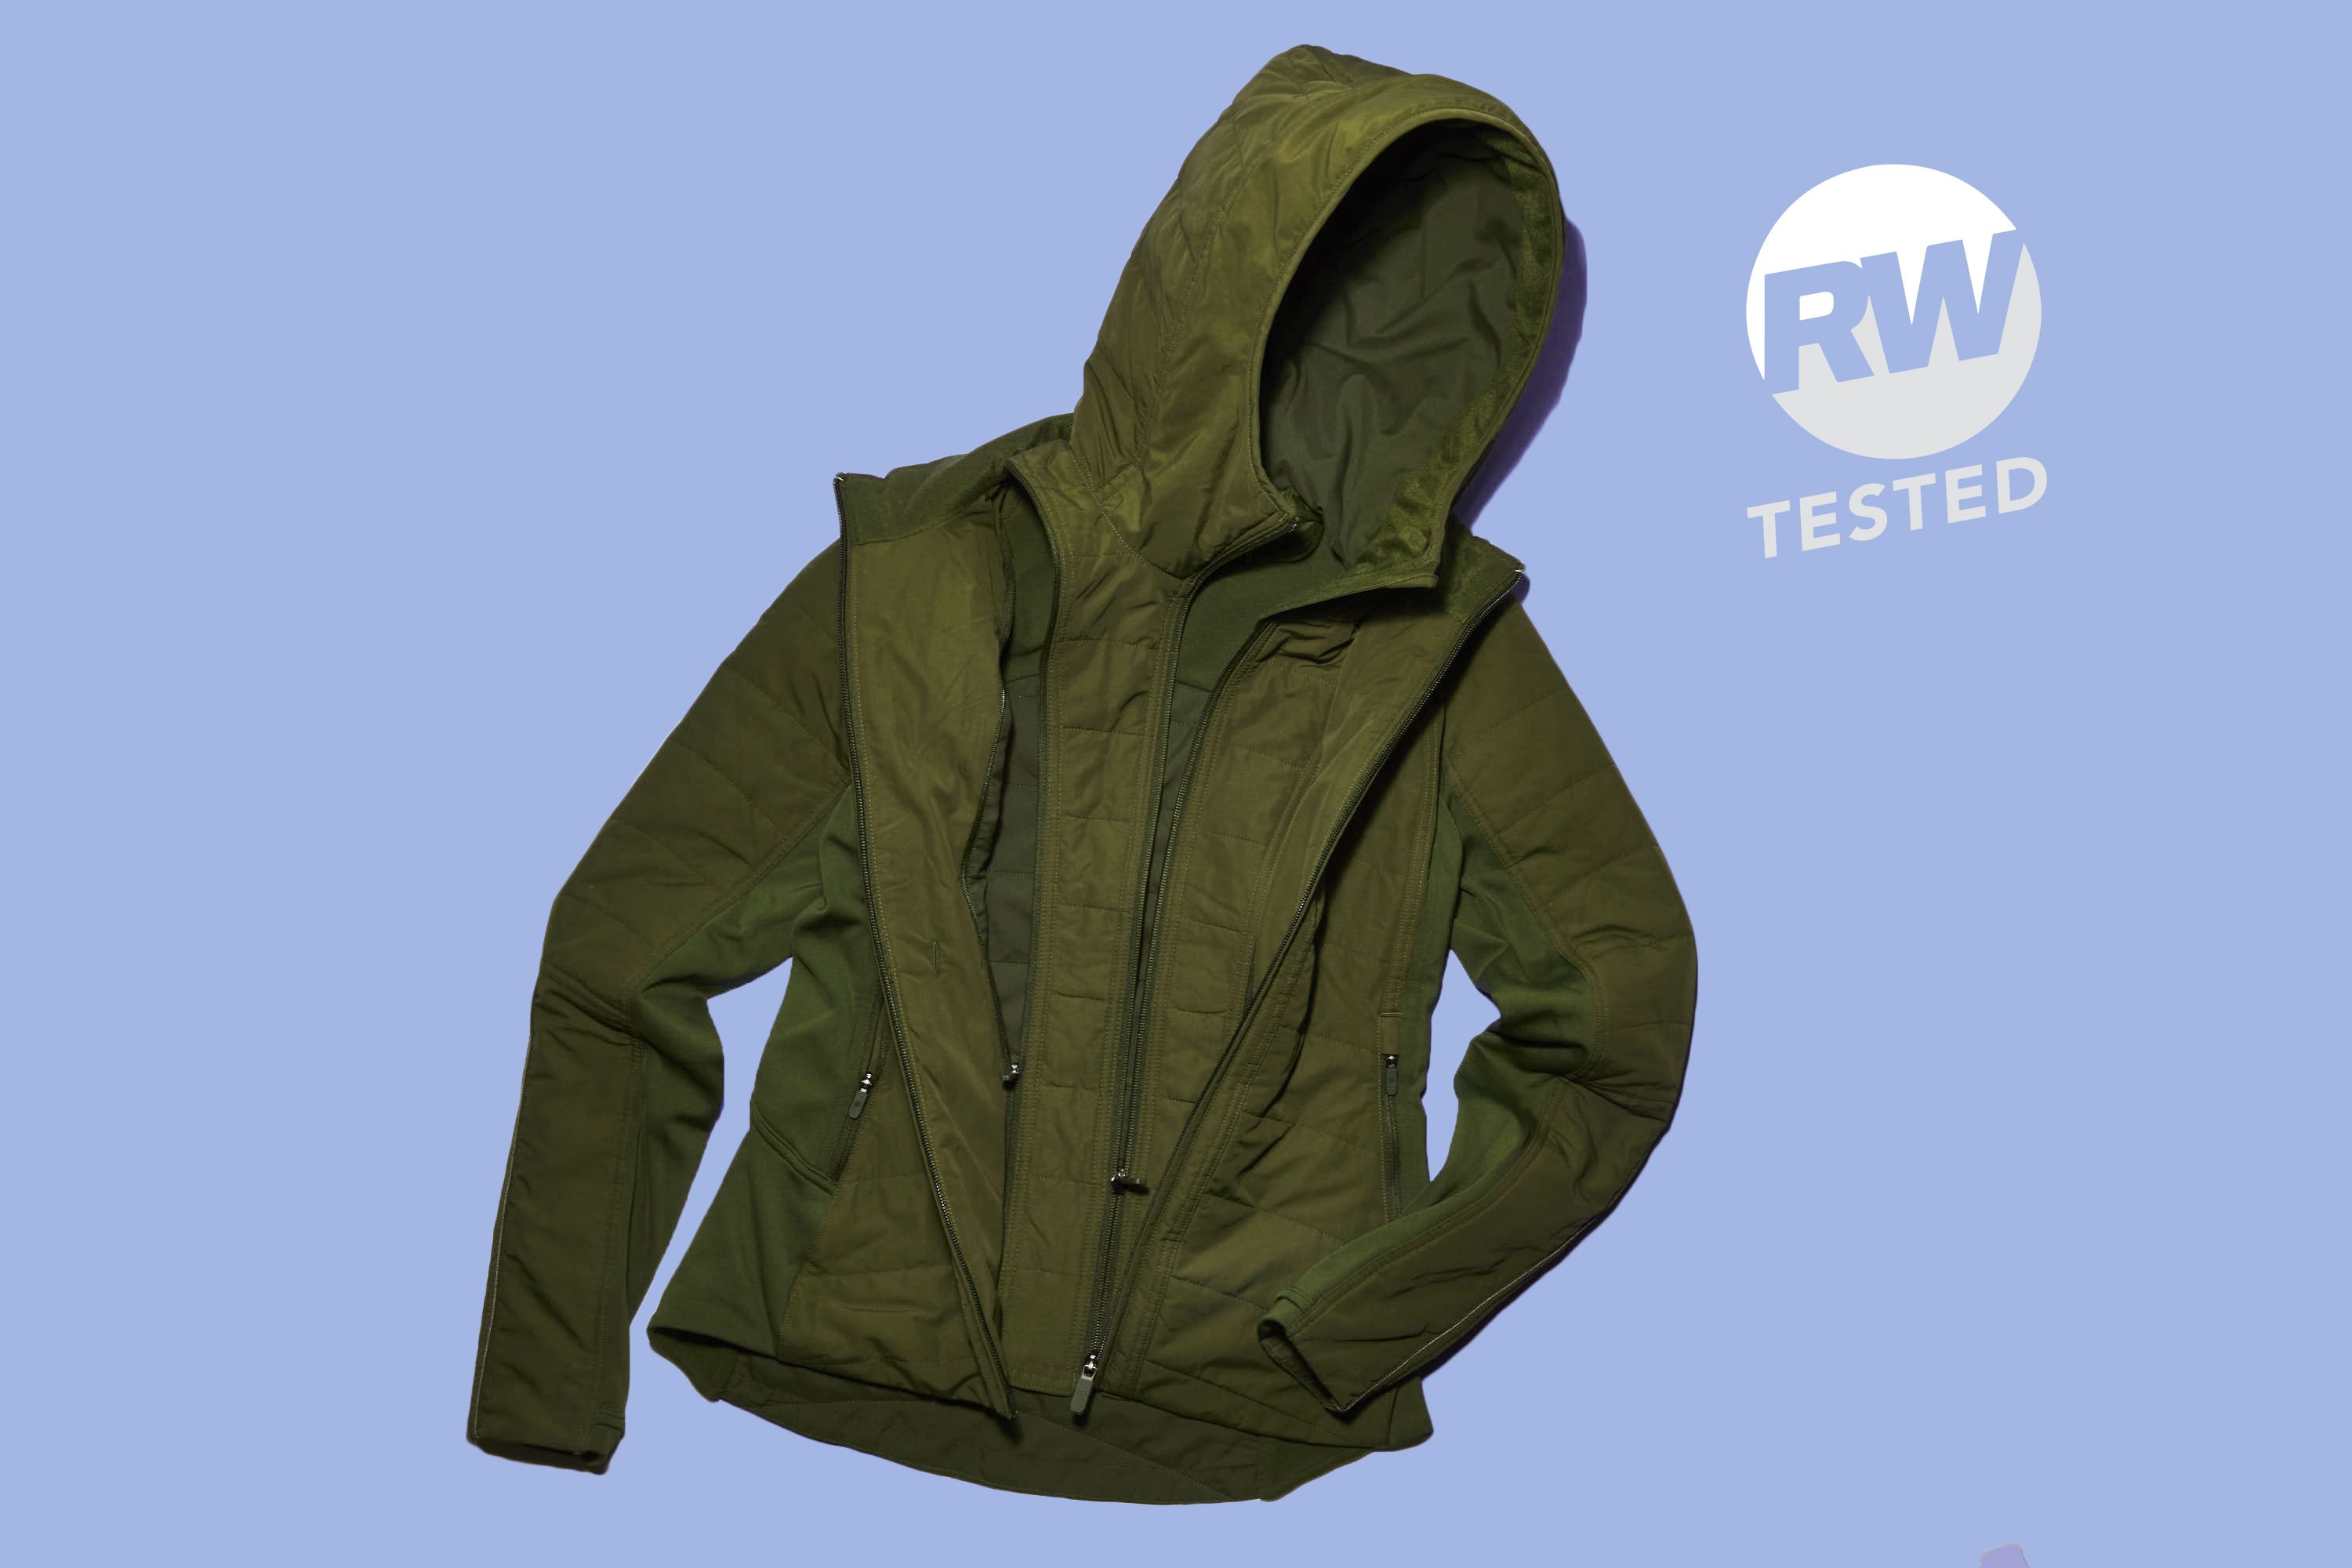 When the Weather Outside Is Frightful, This Lululemon Jacket Is So Delightful